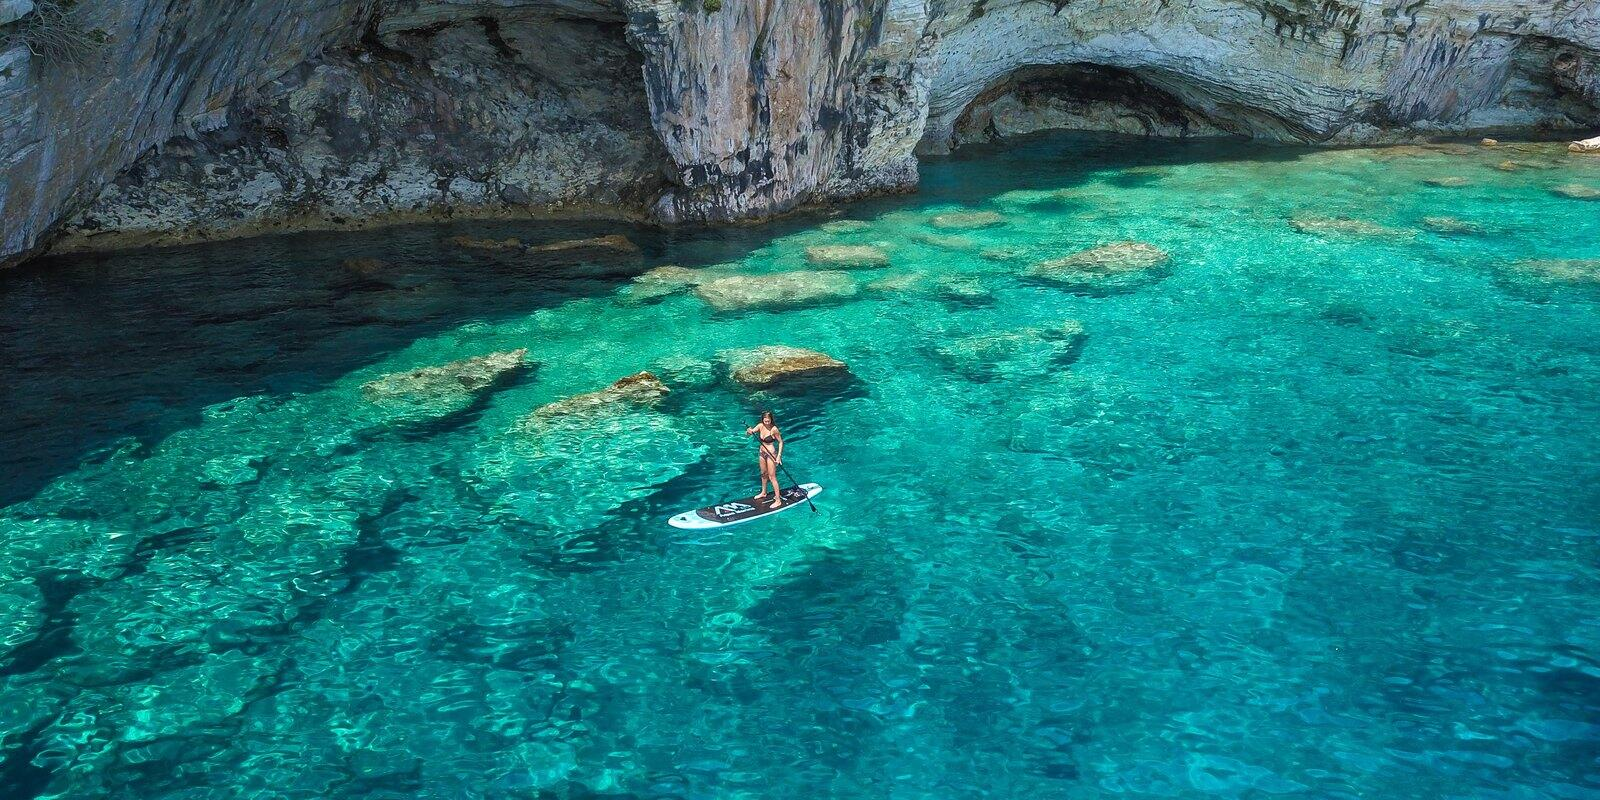 From Kefalonia  - Optional hiking, history, caves, scuba diving